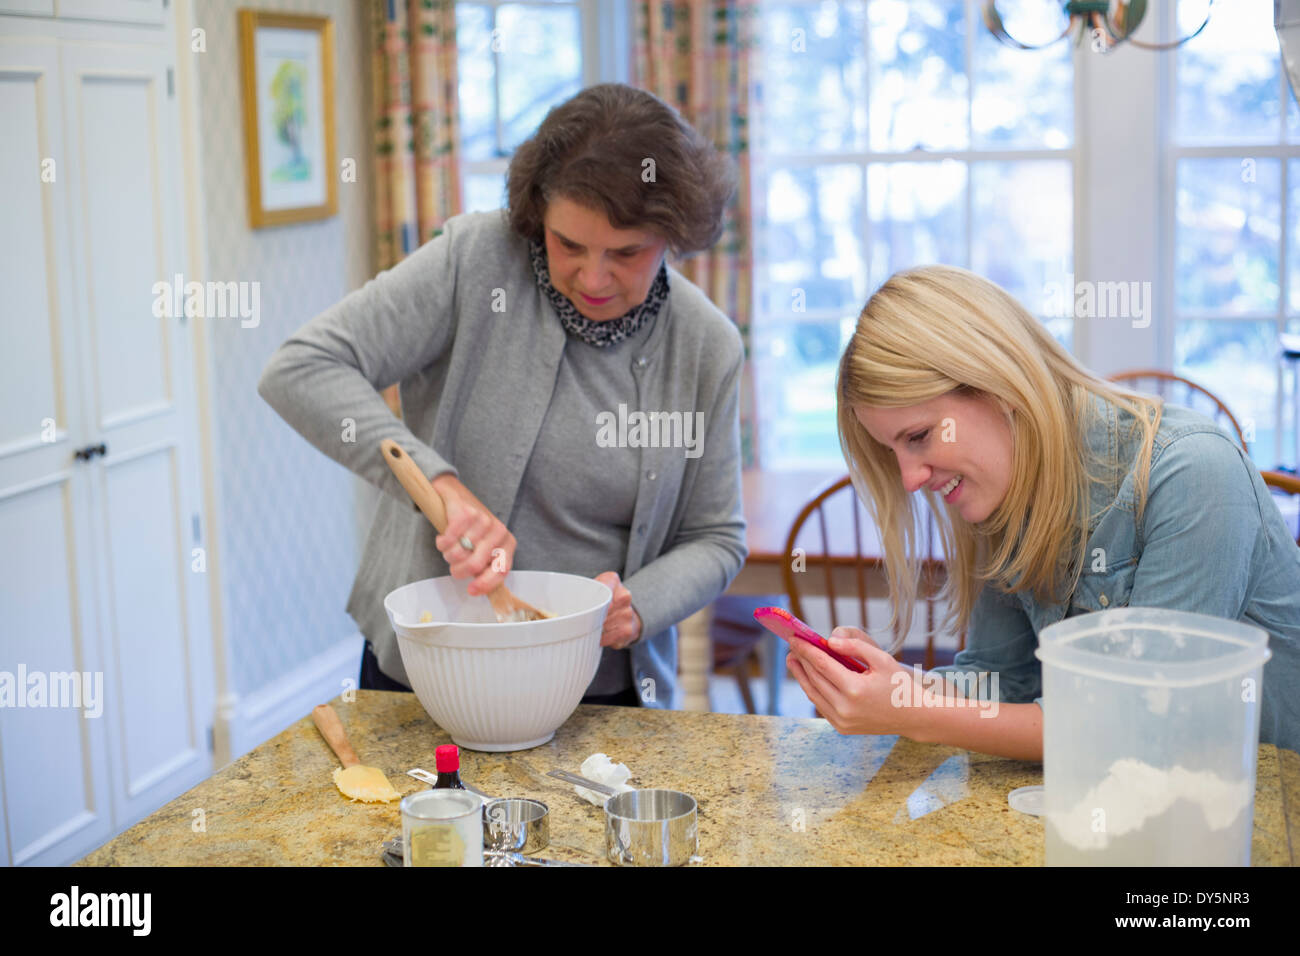 Senior woman and granddaughter baking and using cellphone - Stock Image